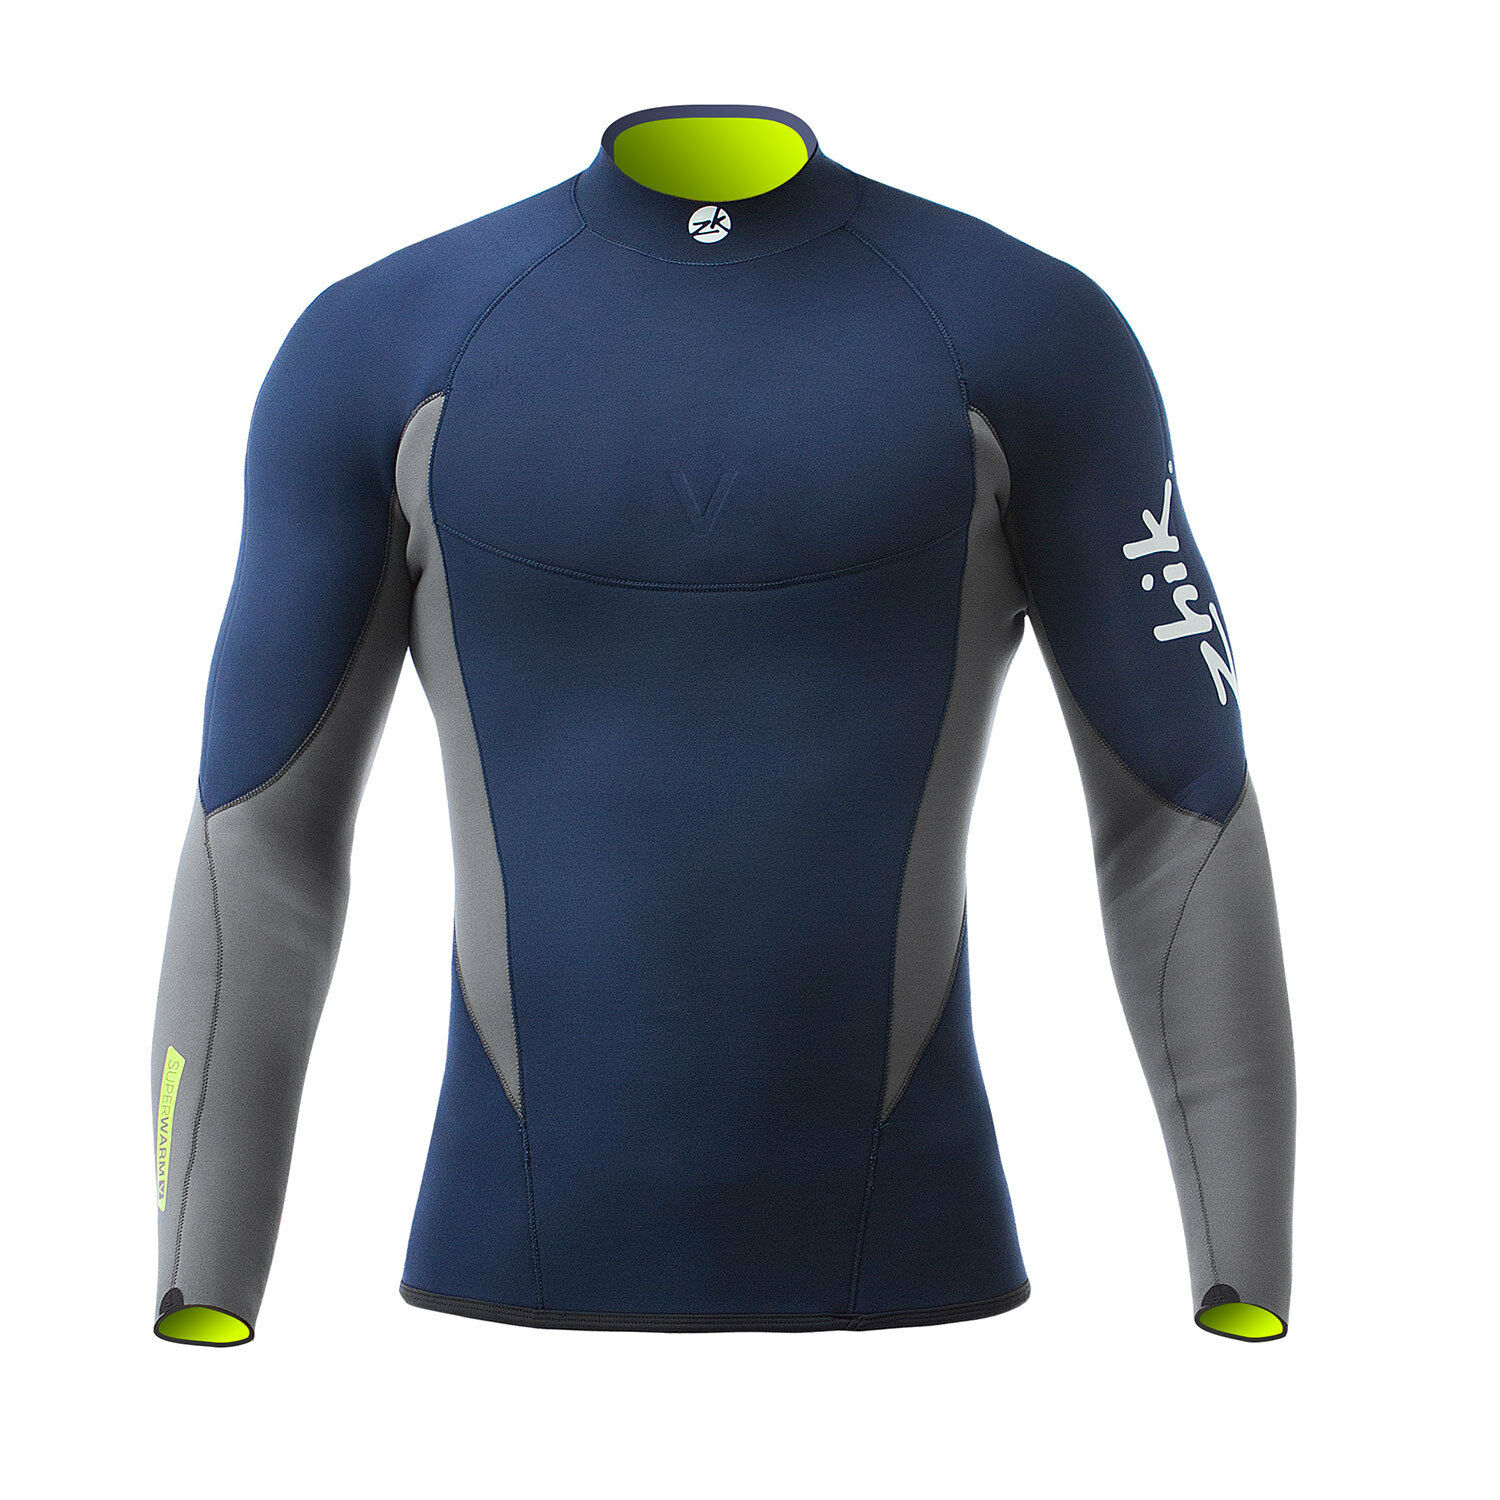 Zhik Superwarm  V Wetsuit Top 2019  high quality & fast shipping